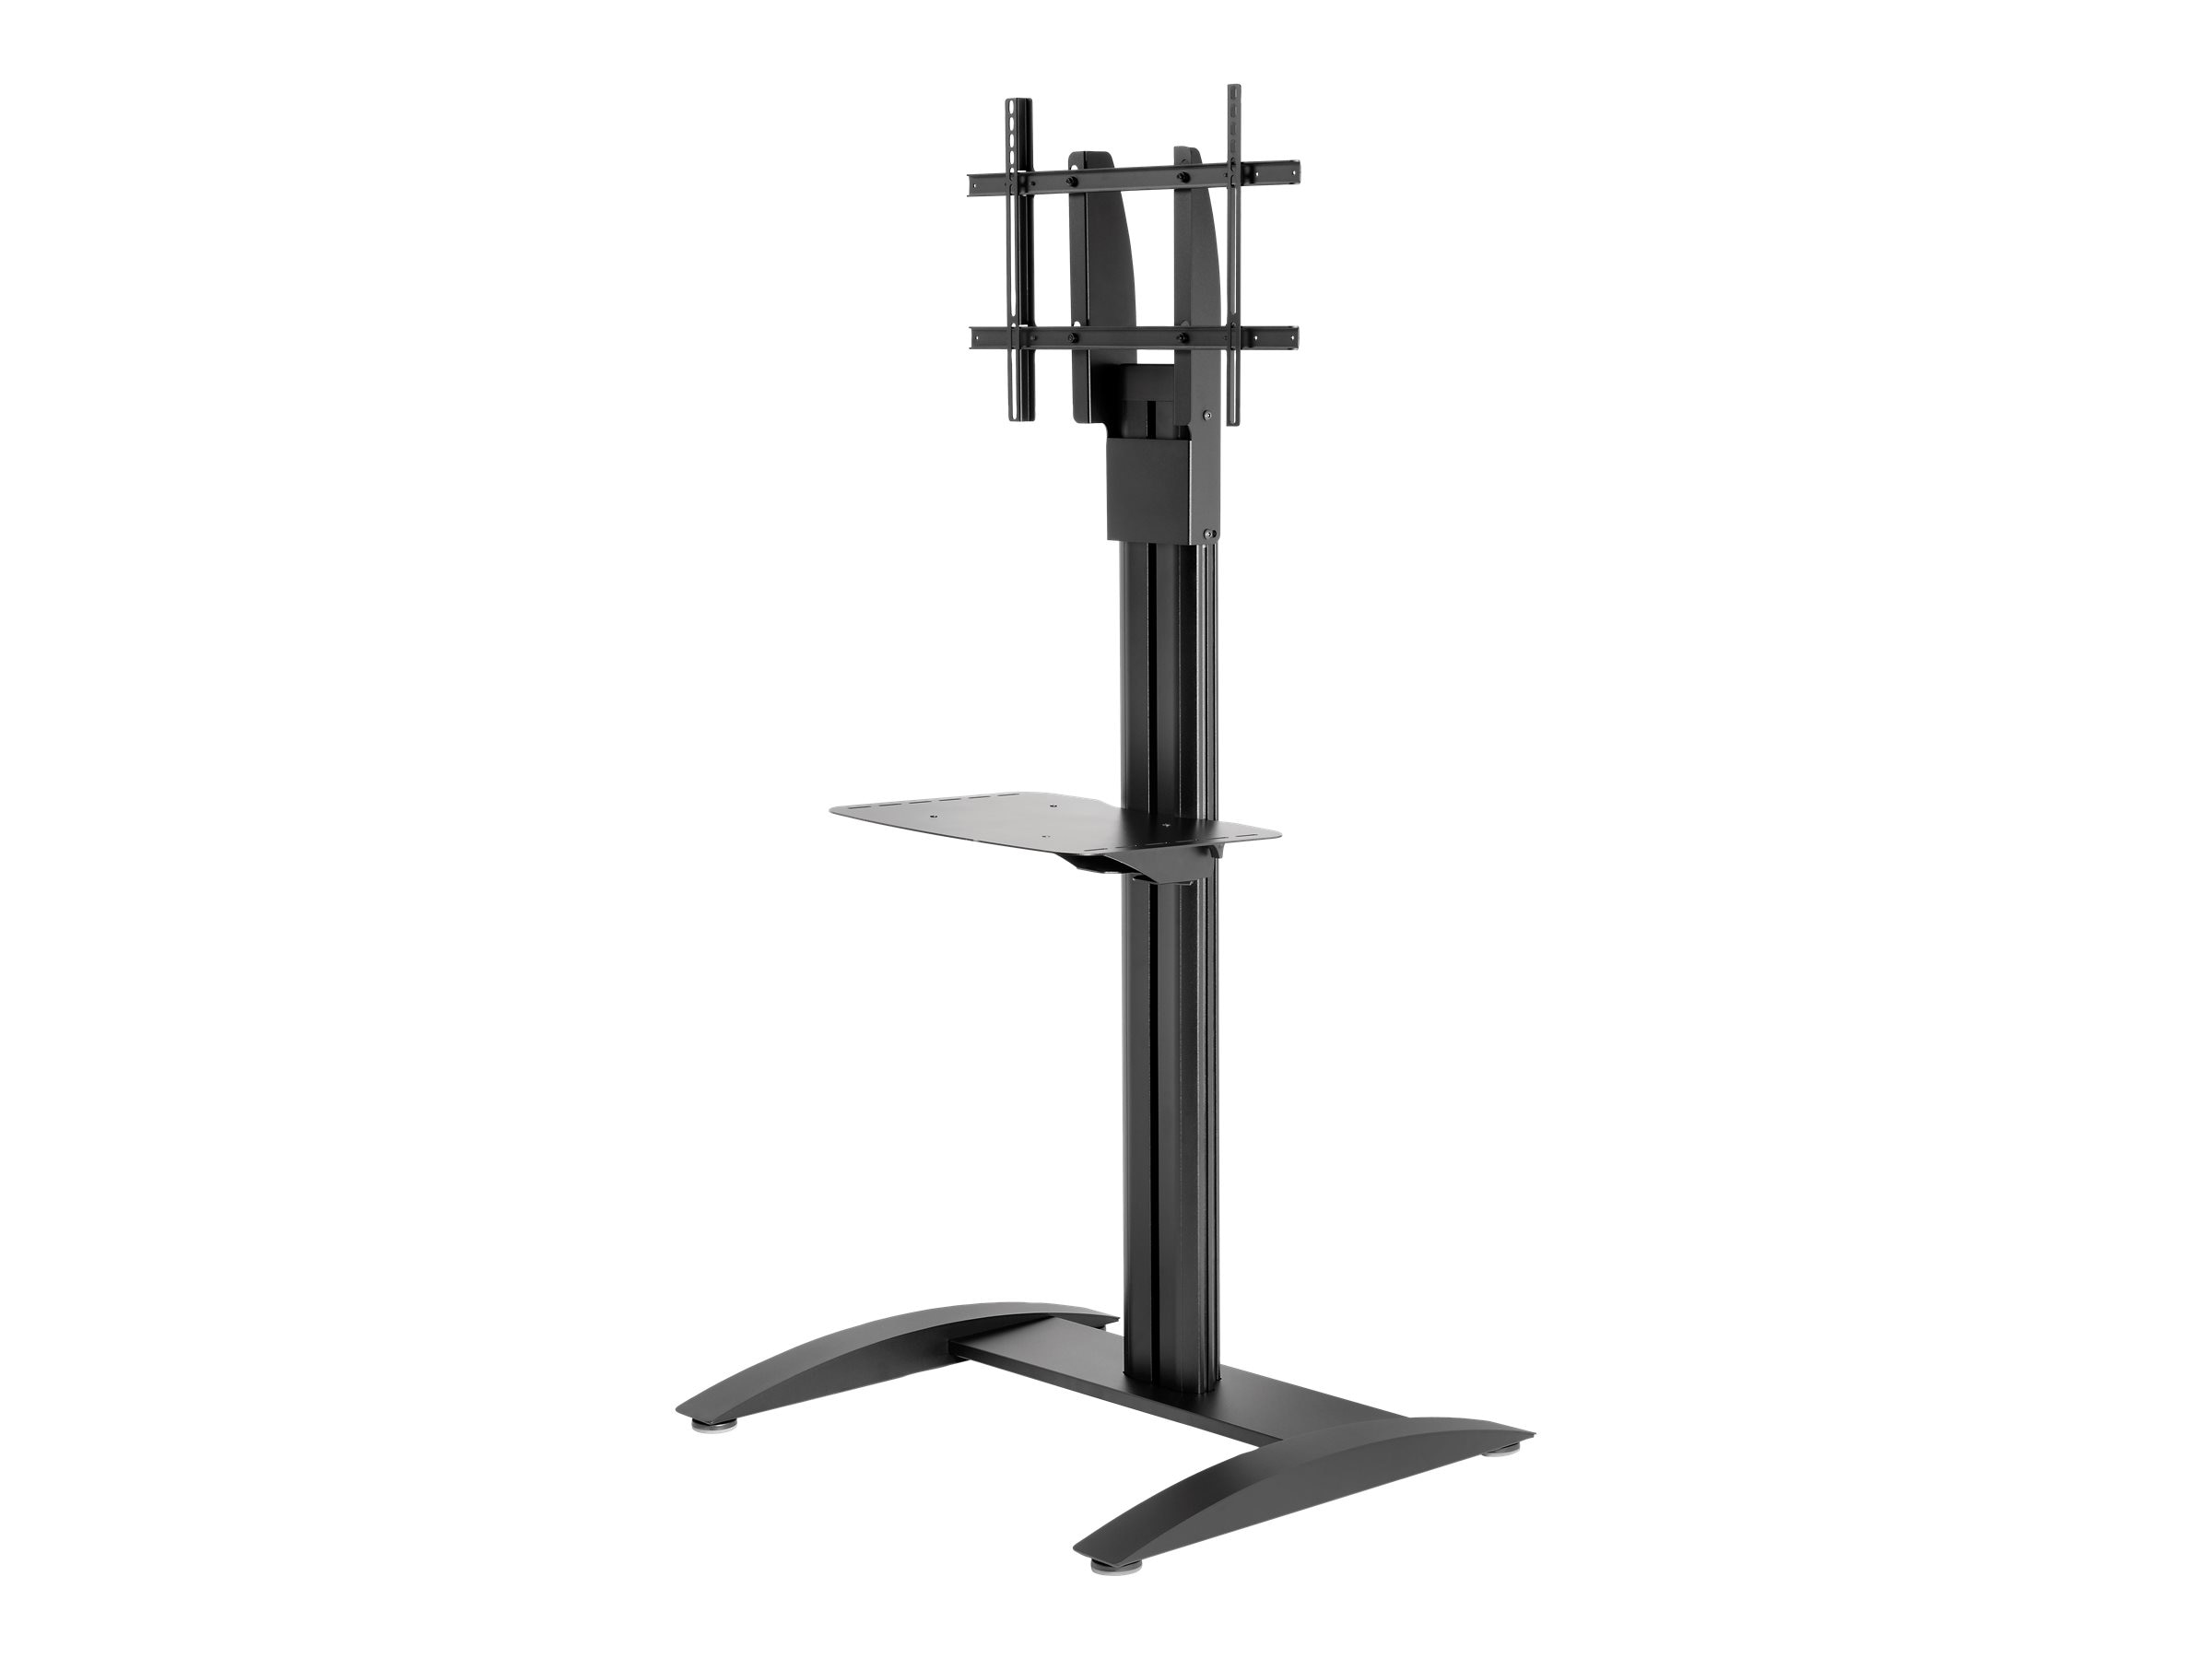 Peerless Flat Panel Stand for 32-65 Displays